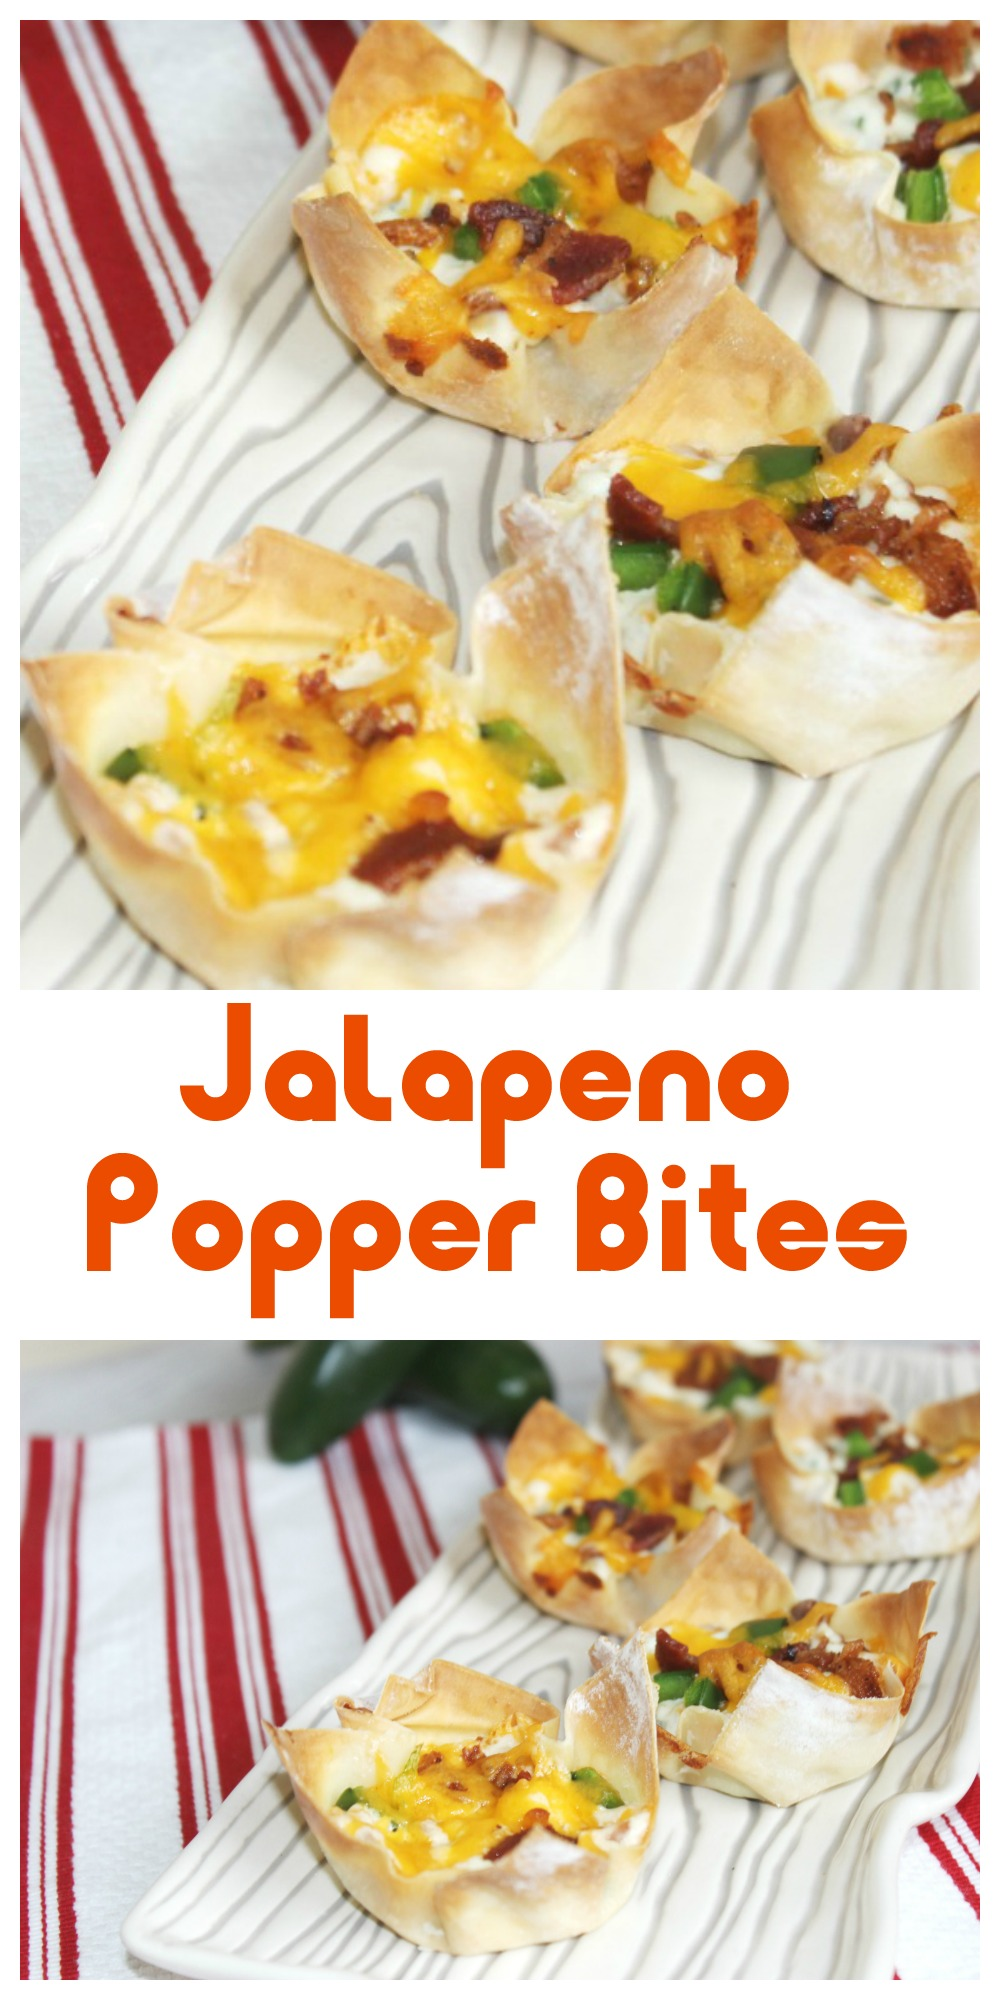 If you're looking for an easy appetizer, these Jalapeno Popper Bites are delicious & ready in a jiffy. They're delicious and make a great movie night snack.